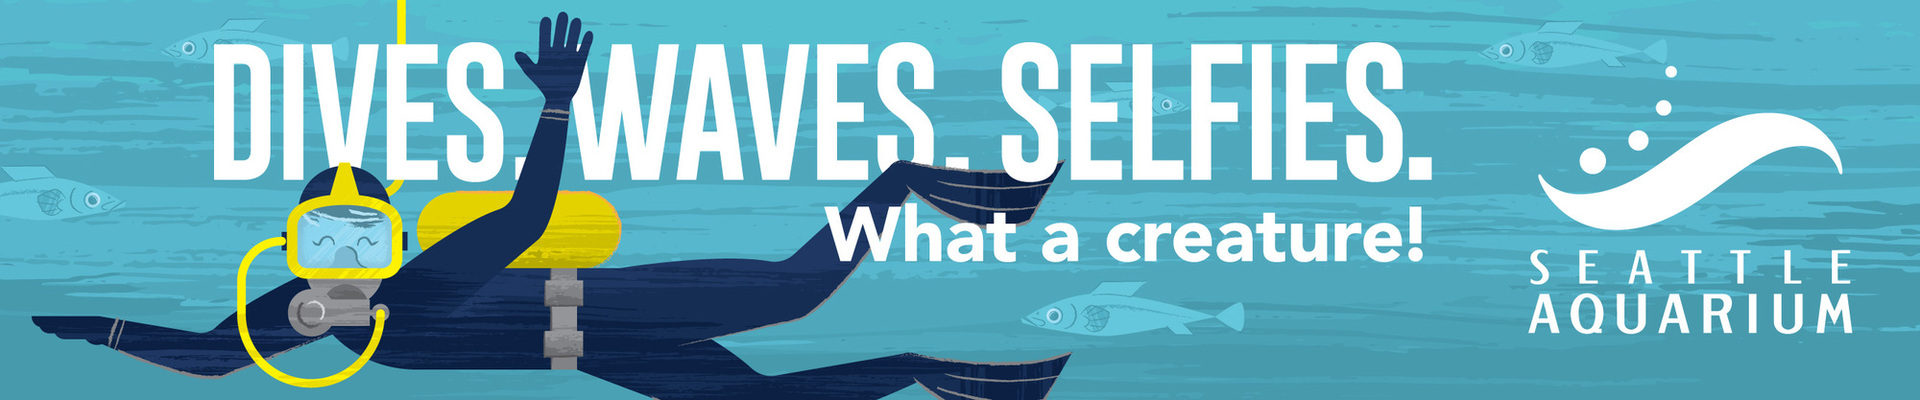 A transit ad for Seattle Aquarium with illustrated scuba diver and the headline Dives. Waves. Selfies